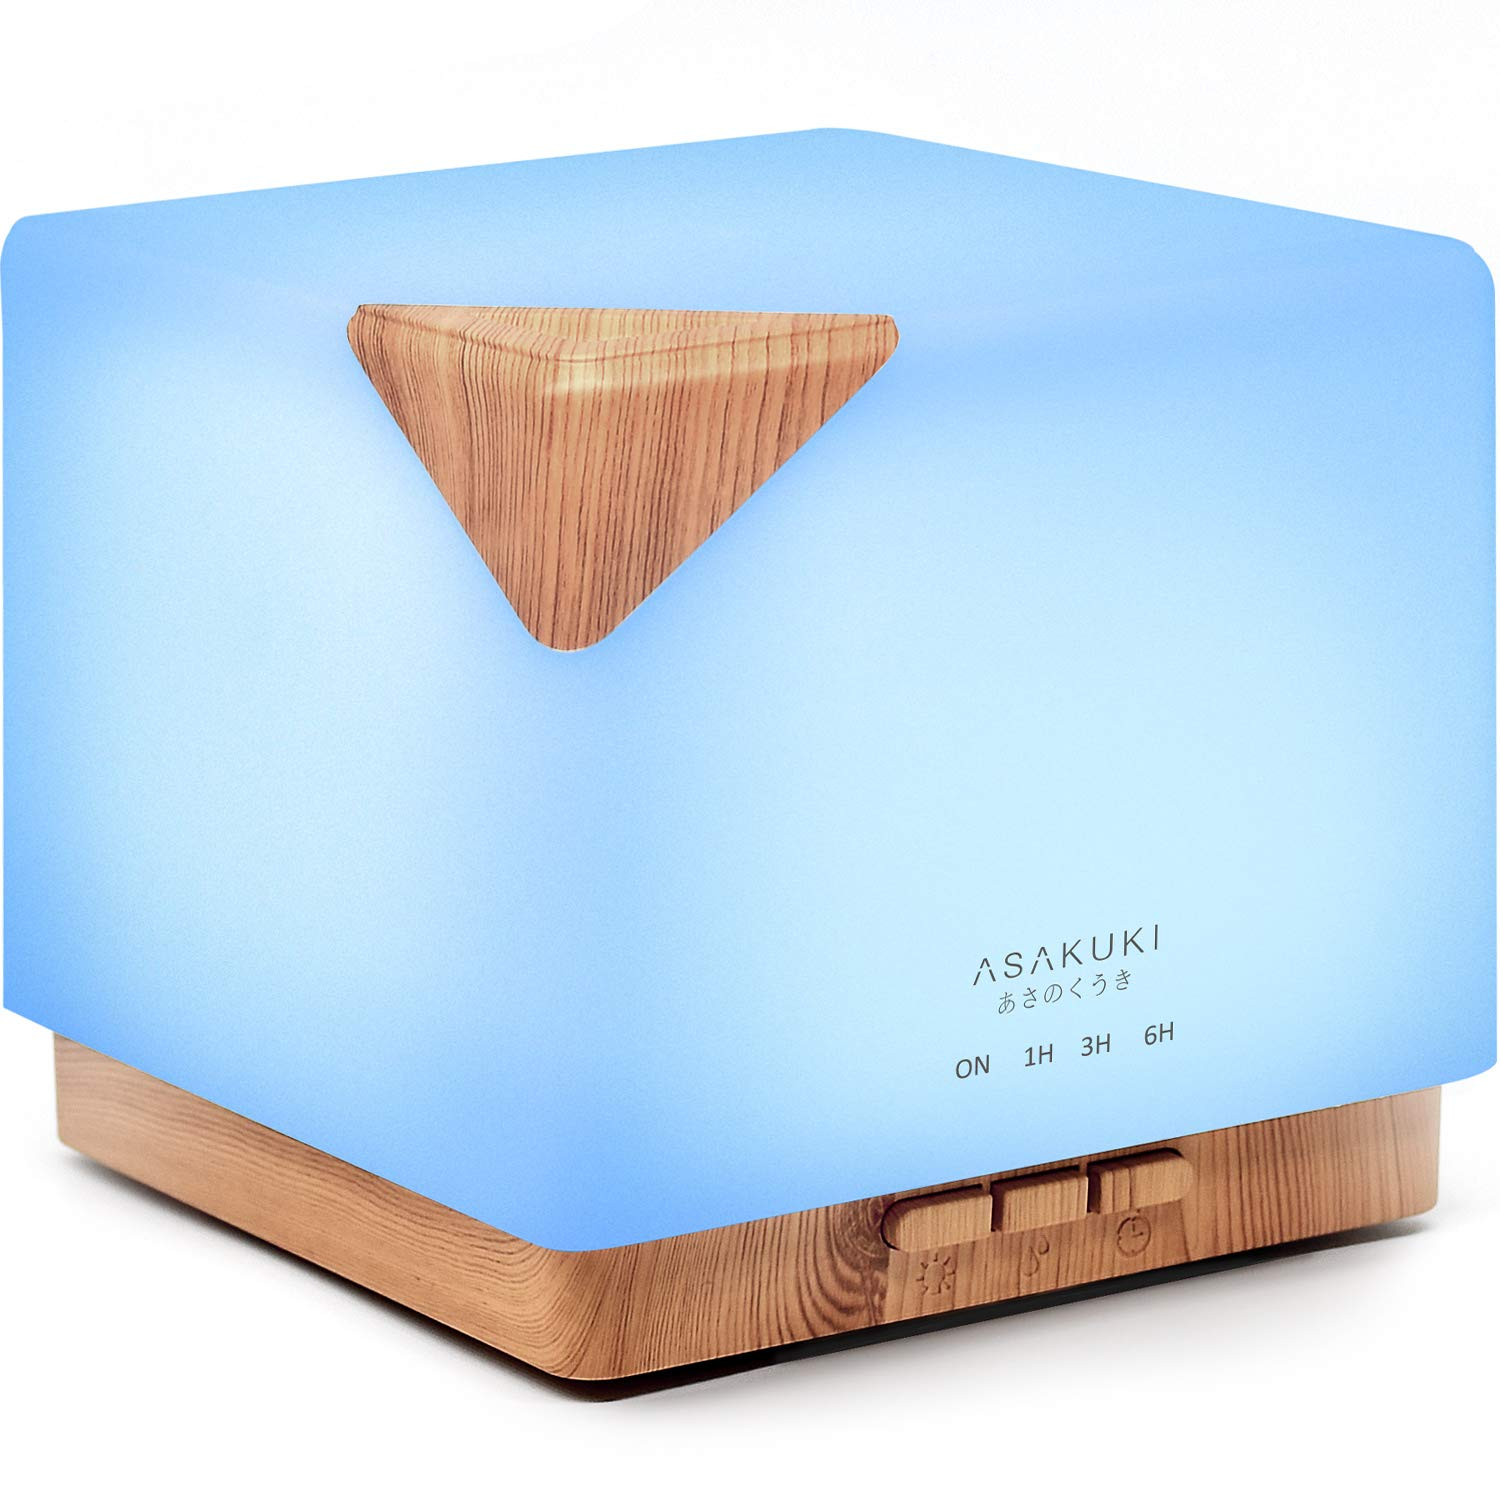 ASAKUKI 700ml Premium, Essential Oil Diffuser, 5 in 1 Ultrasonic Aromatherapy Fragrant Oil Vaporizer Humidifier, Timer and Auto-Off Safety Switch, 7 LED Light Colors by ASAKUKI